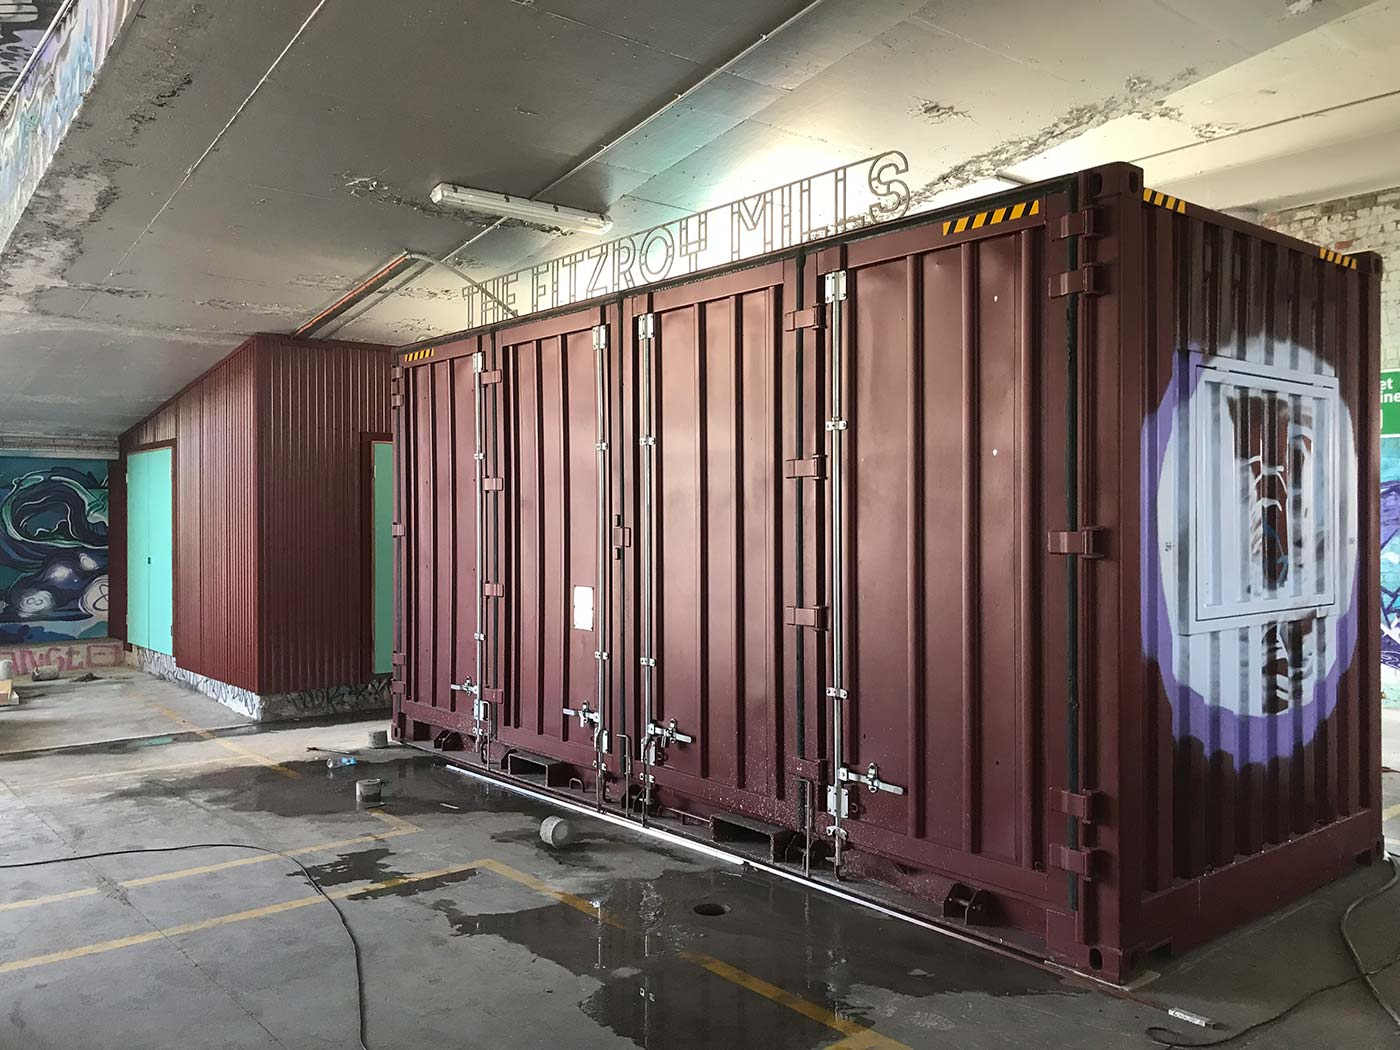 Fitzroy-Mills-Shipping-Container-Cafe-7